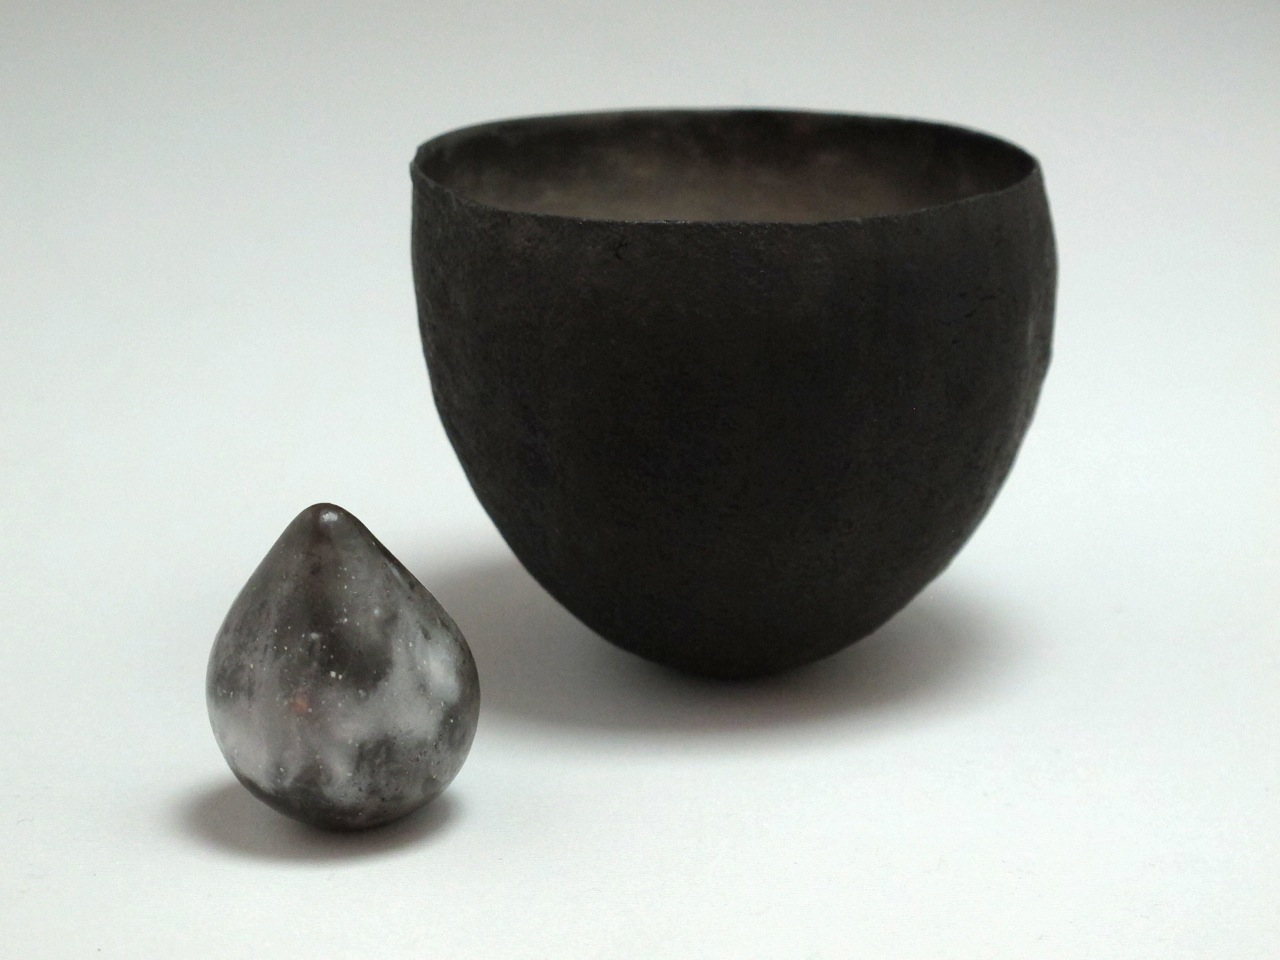 Black Speckled Vessel with Seed